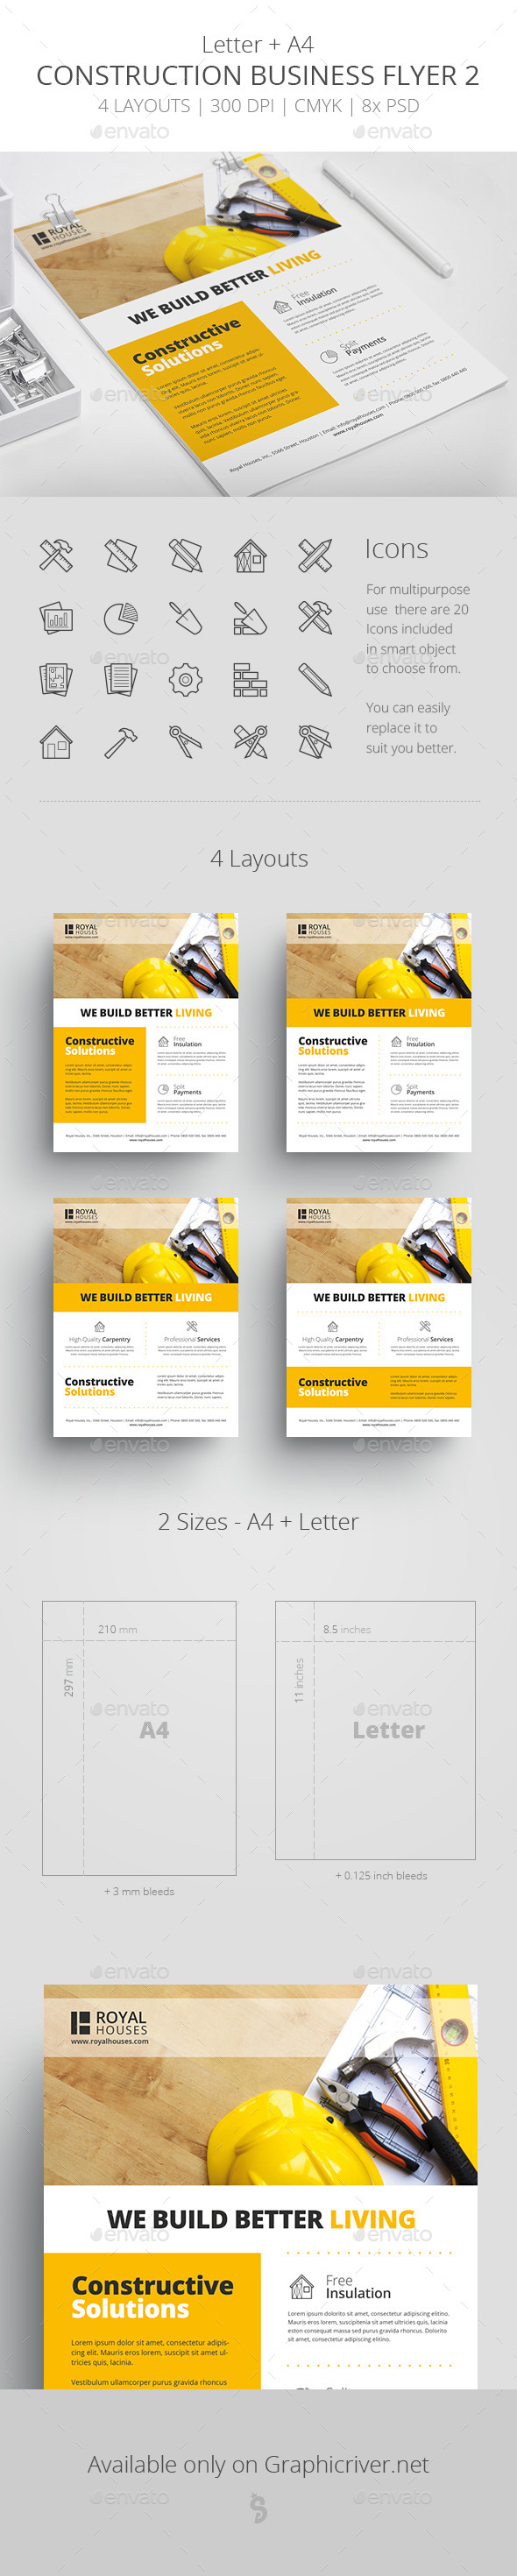 Construction Business Flyer 2 - Letter + A4 - Corporate Flyers